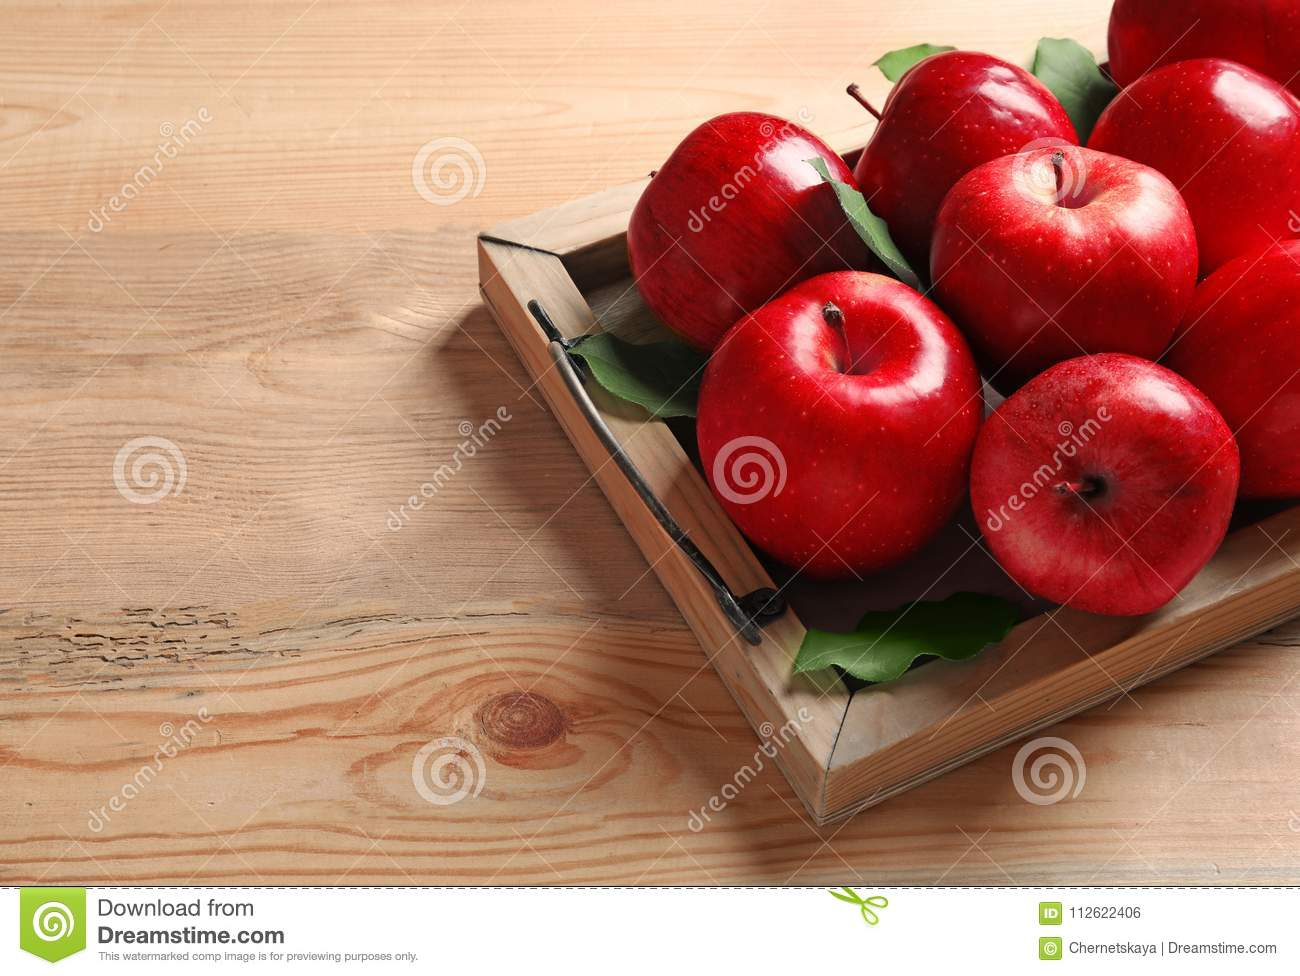 Tray with ripe red apples